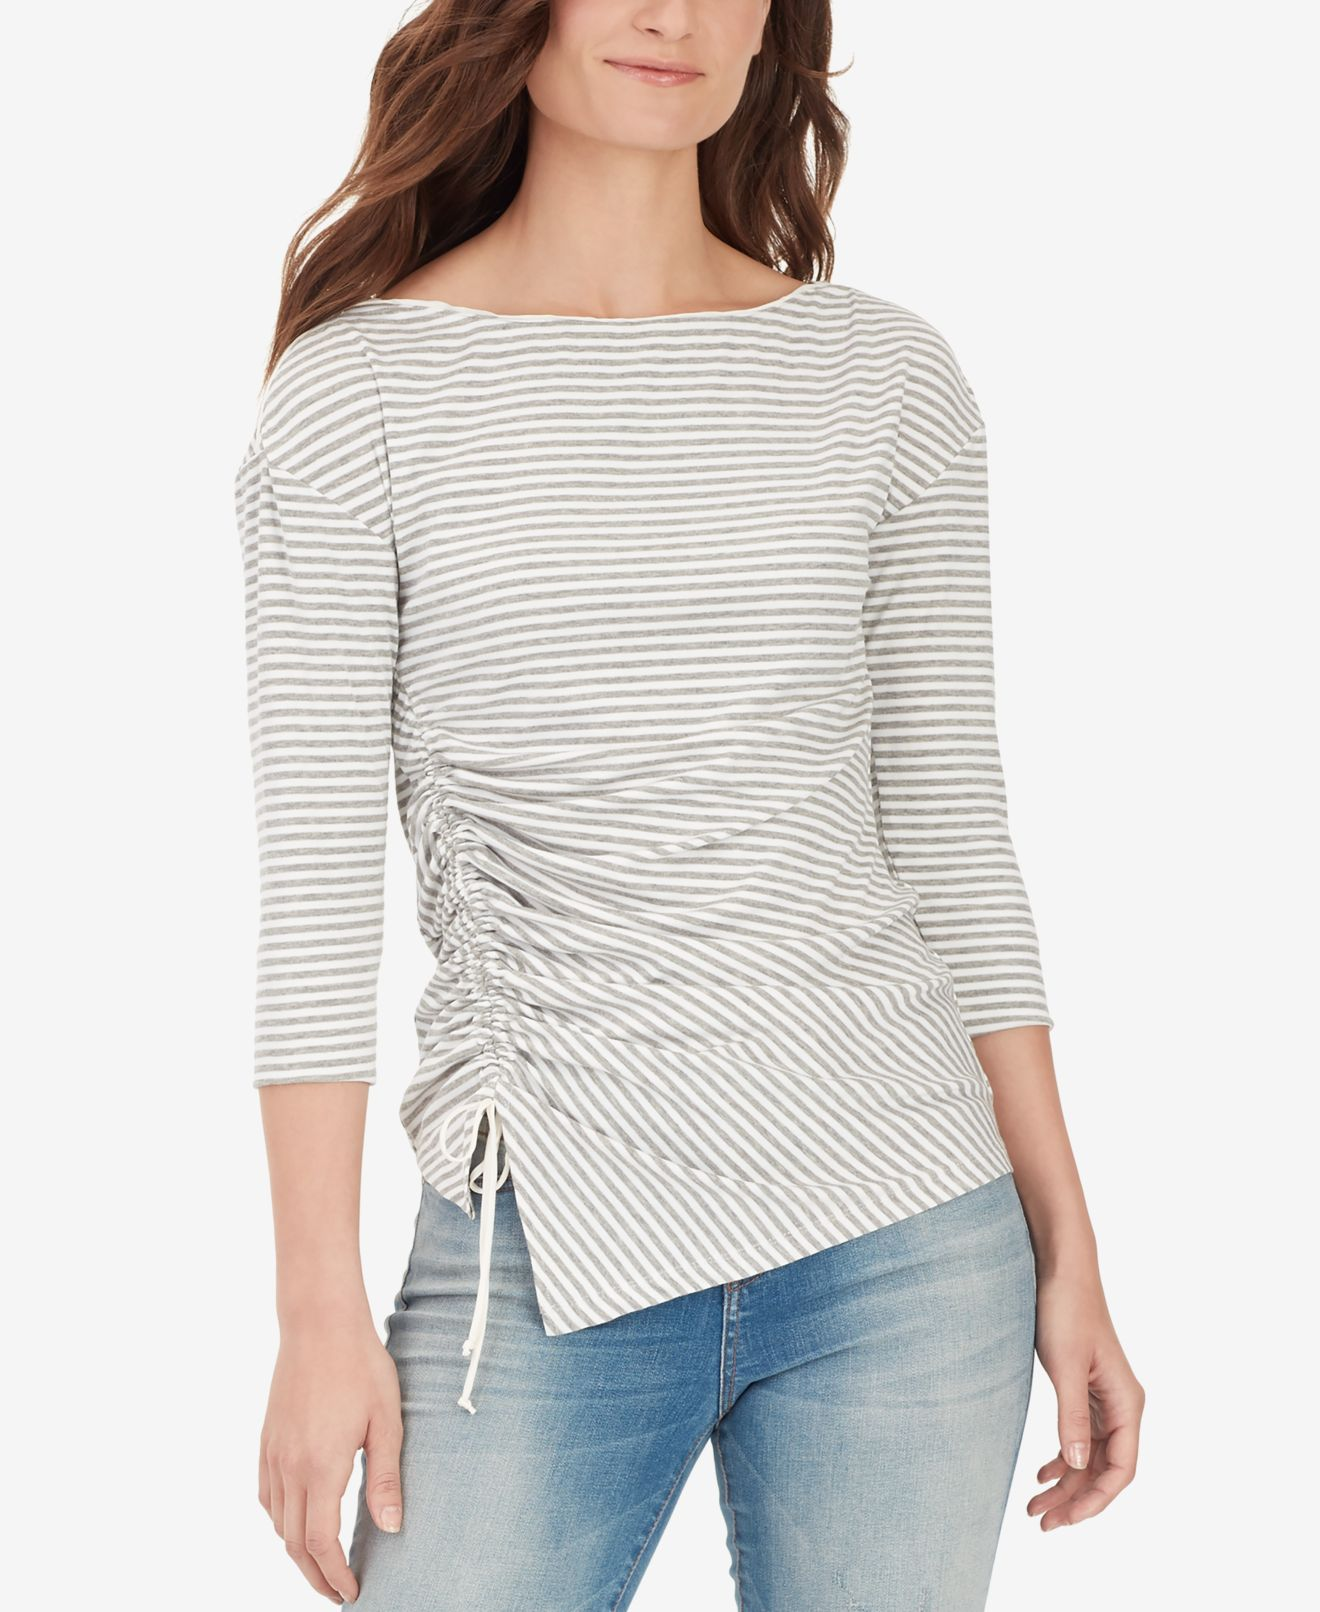 William-Rast-Women-039-s-Top-Blouse-Gray-Size-XL-Striped-Ribbed-Ruched